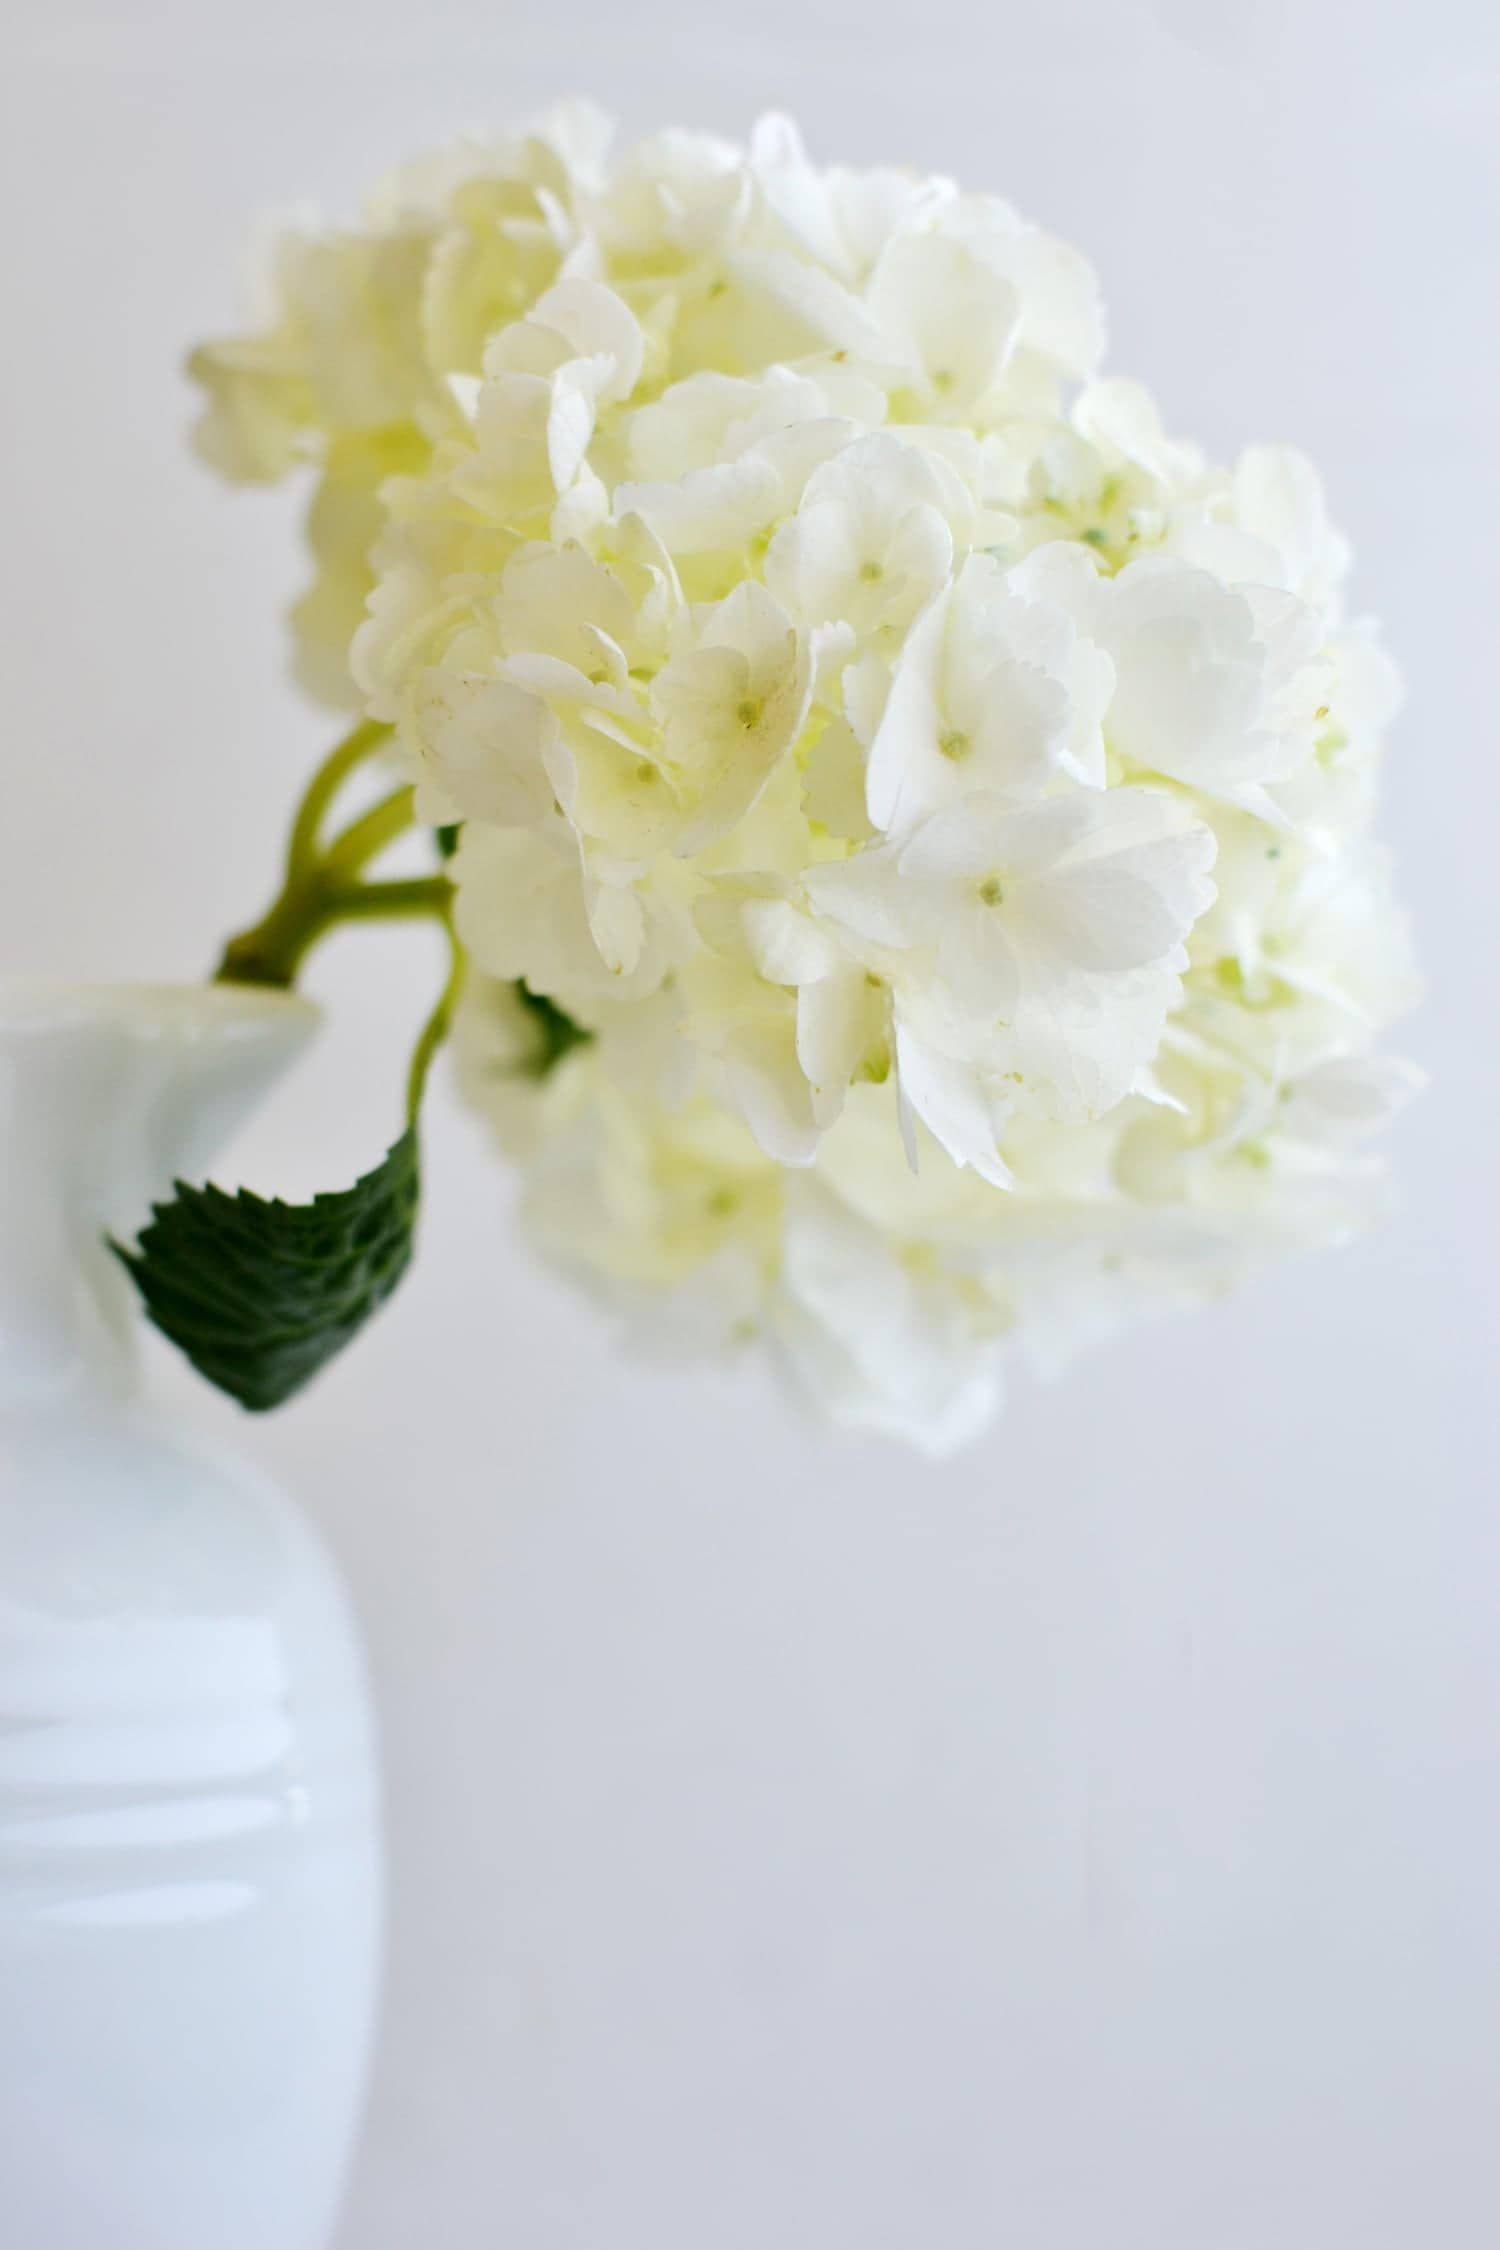 Save+your+wilted+hydrangeas!+boxwoodavenue.com